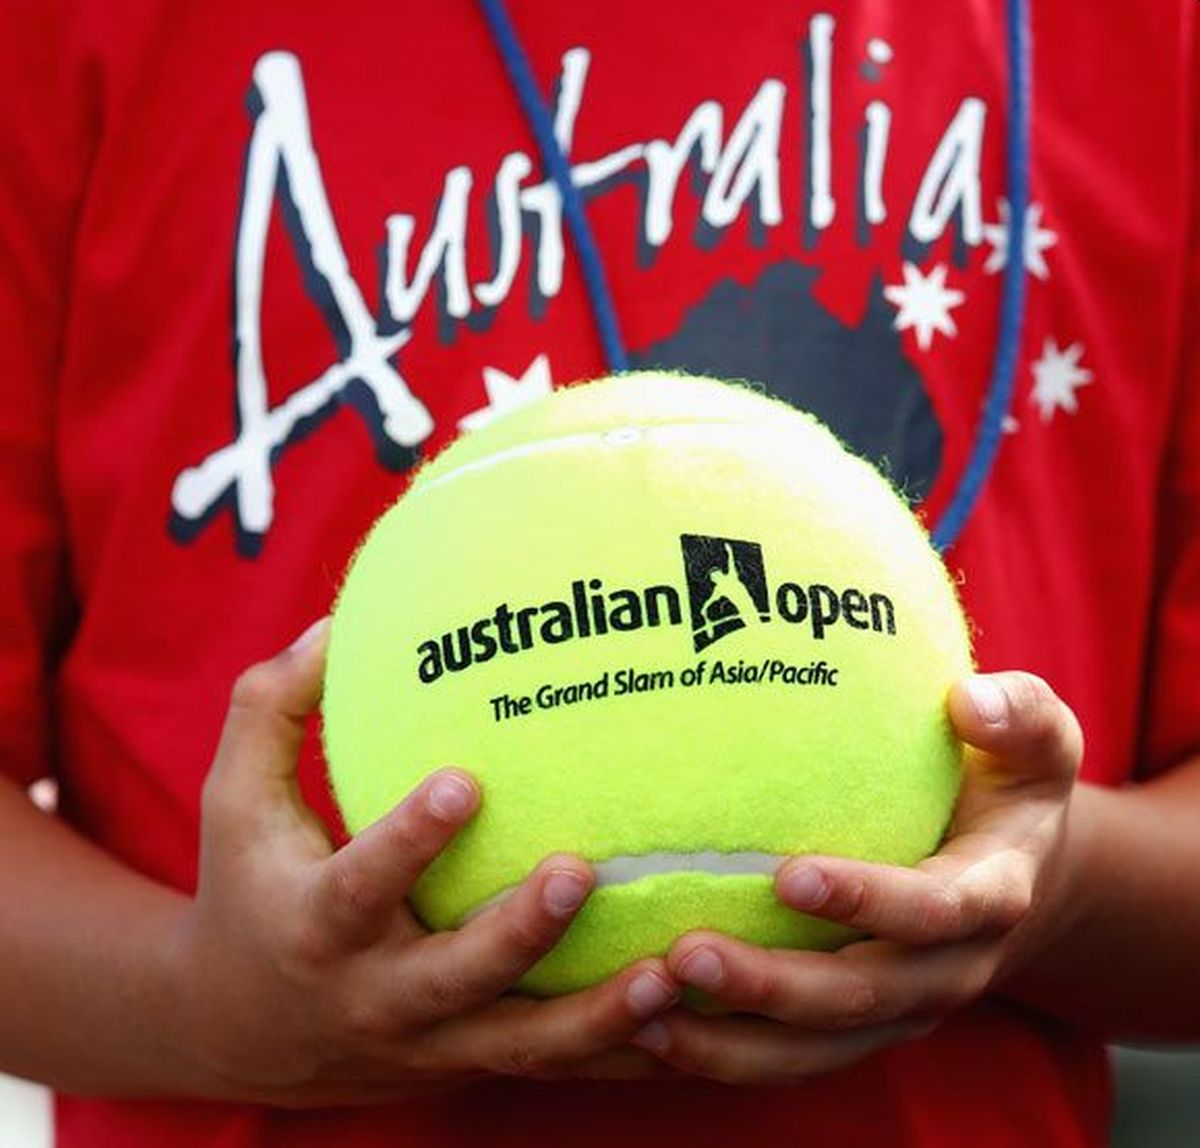 The ATP said men's qualifying for the Australian Open would take place in Doha from January 10-13 before players relocate to Melbourne to enter quarantine for two weeks.